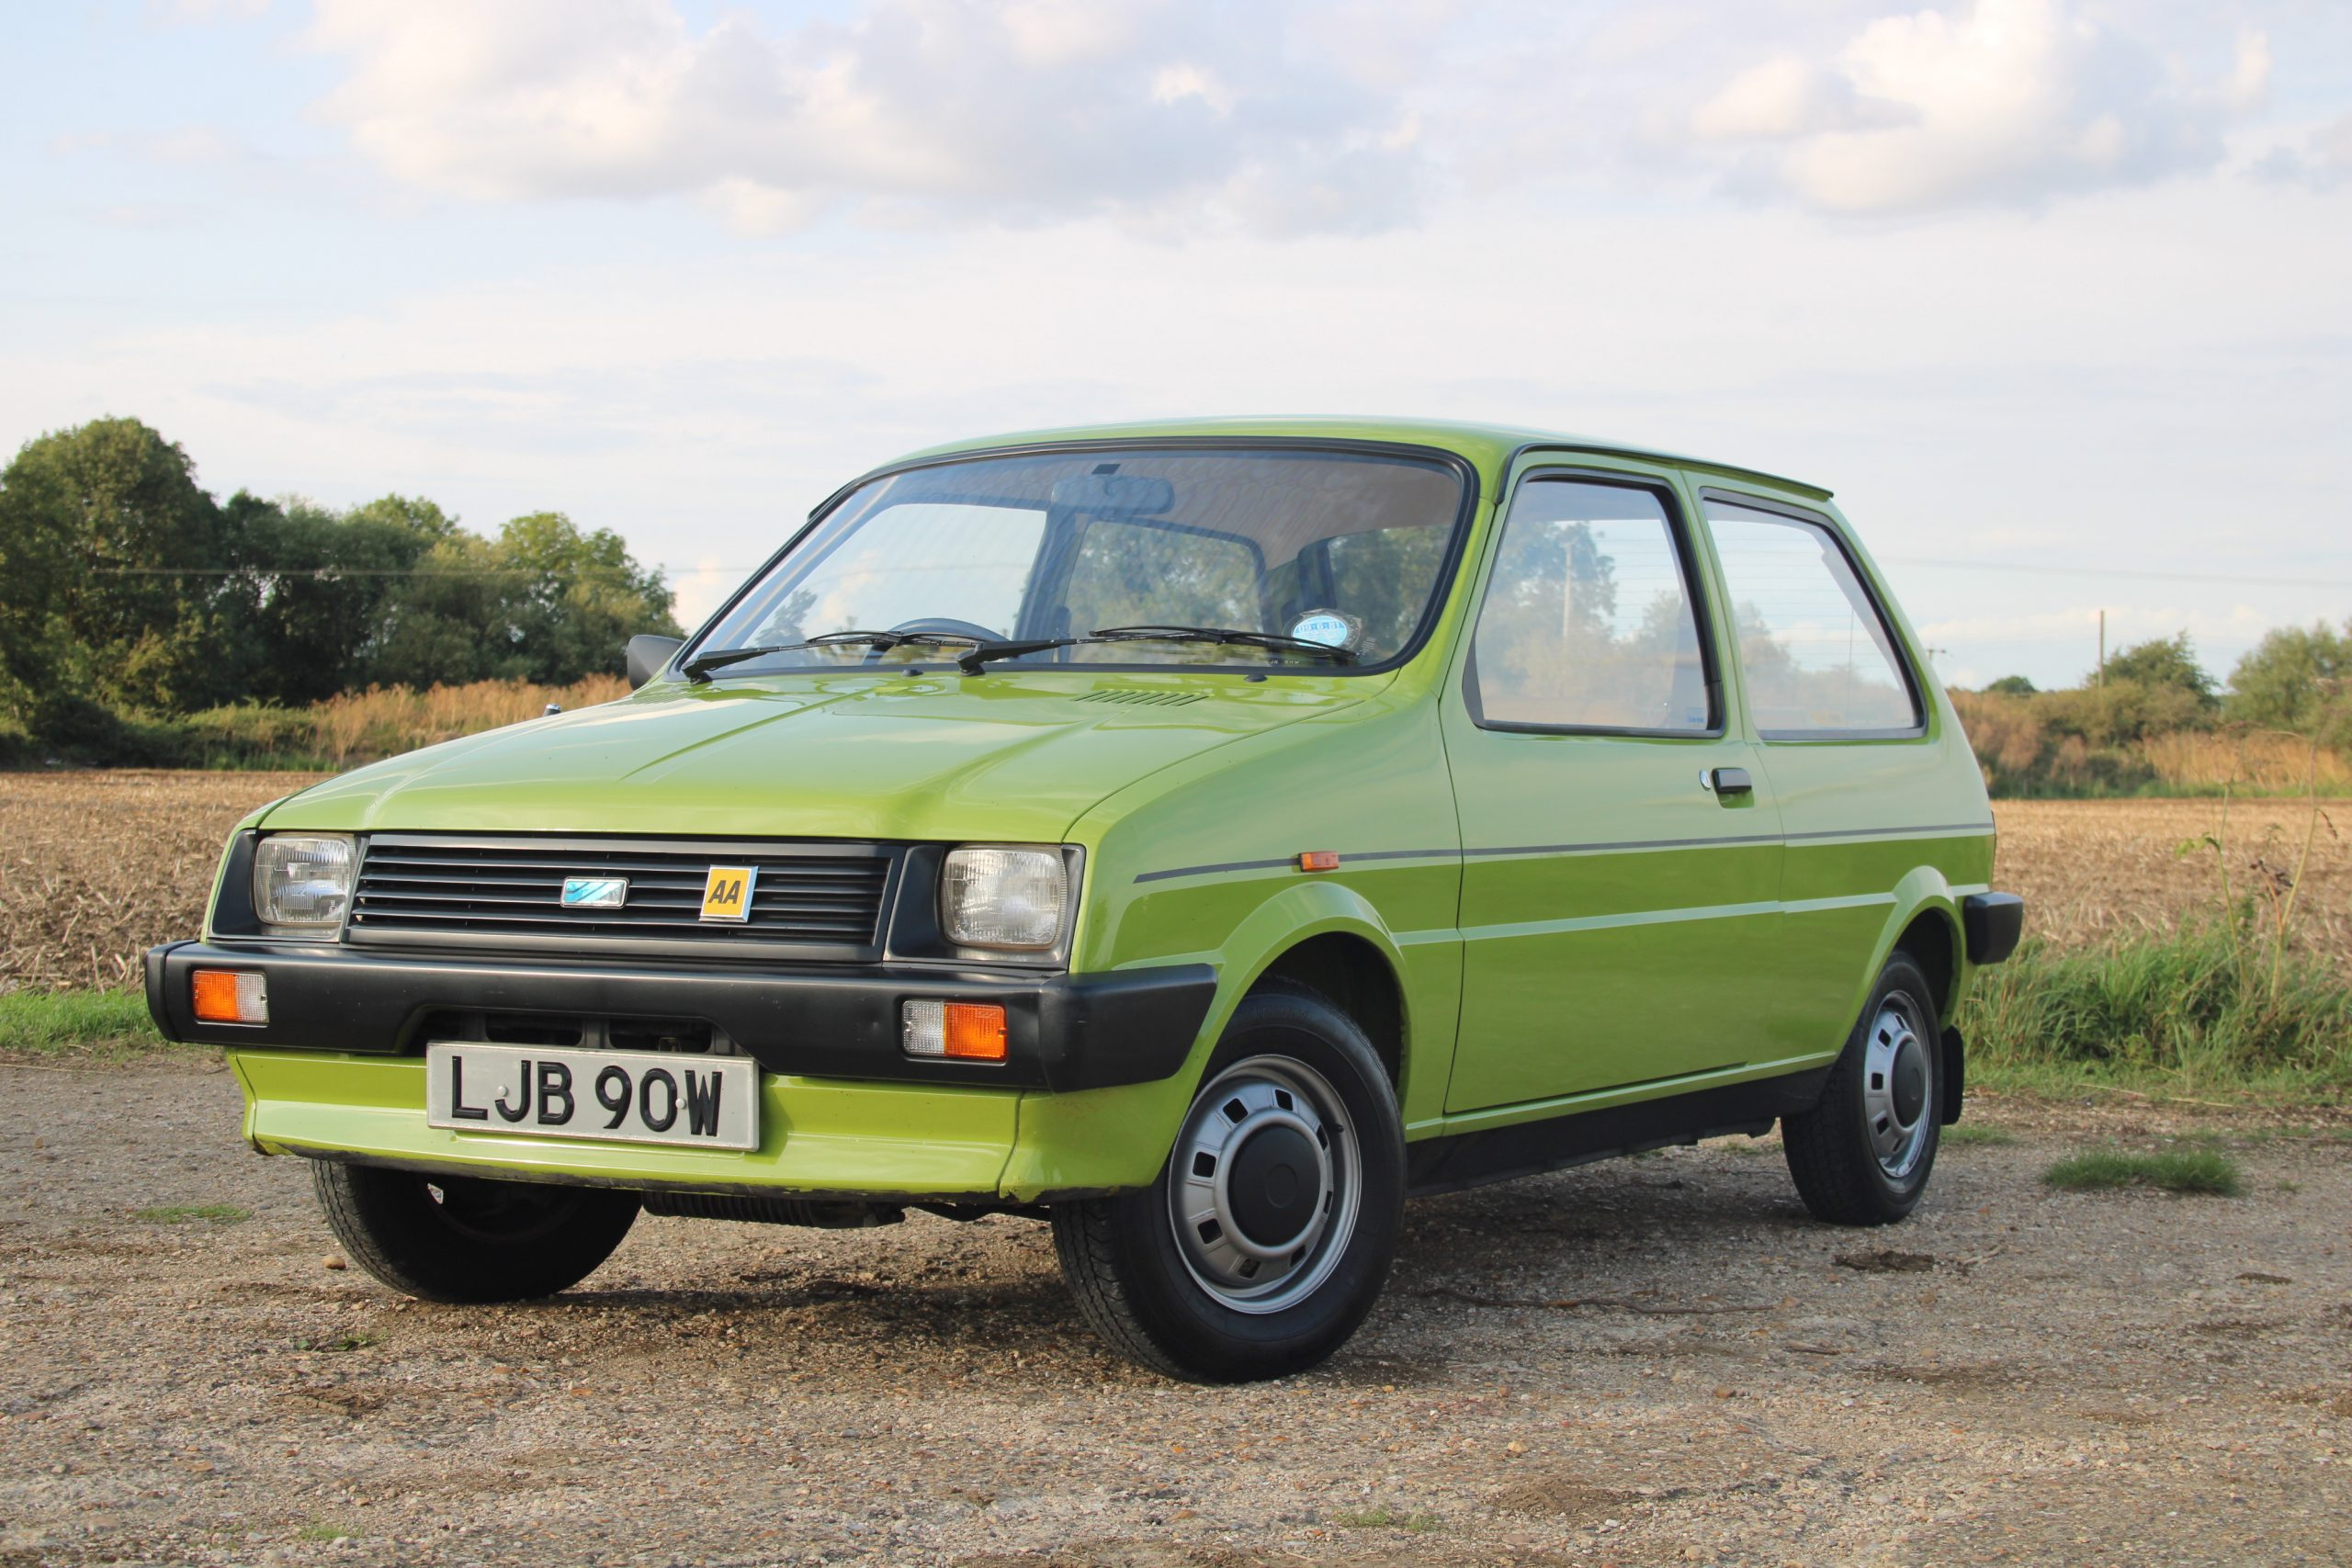 Who wants to live for ever? The Austin Metro did